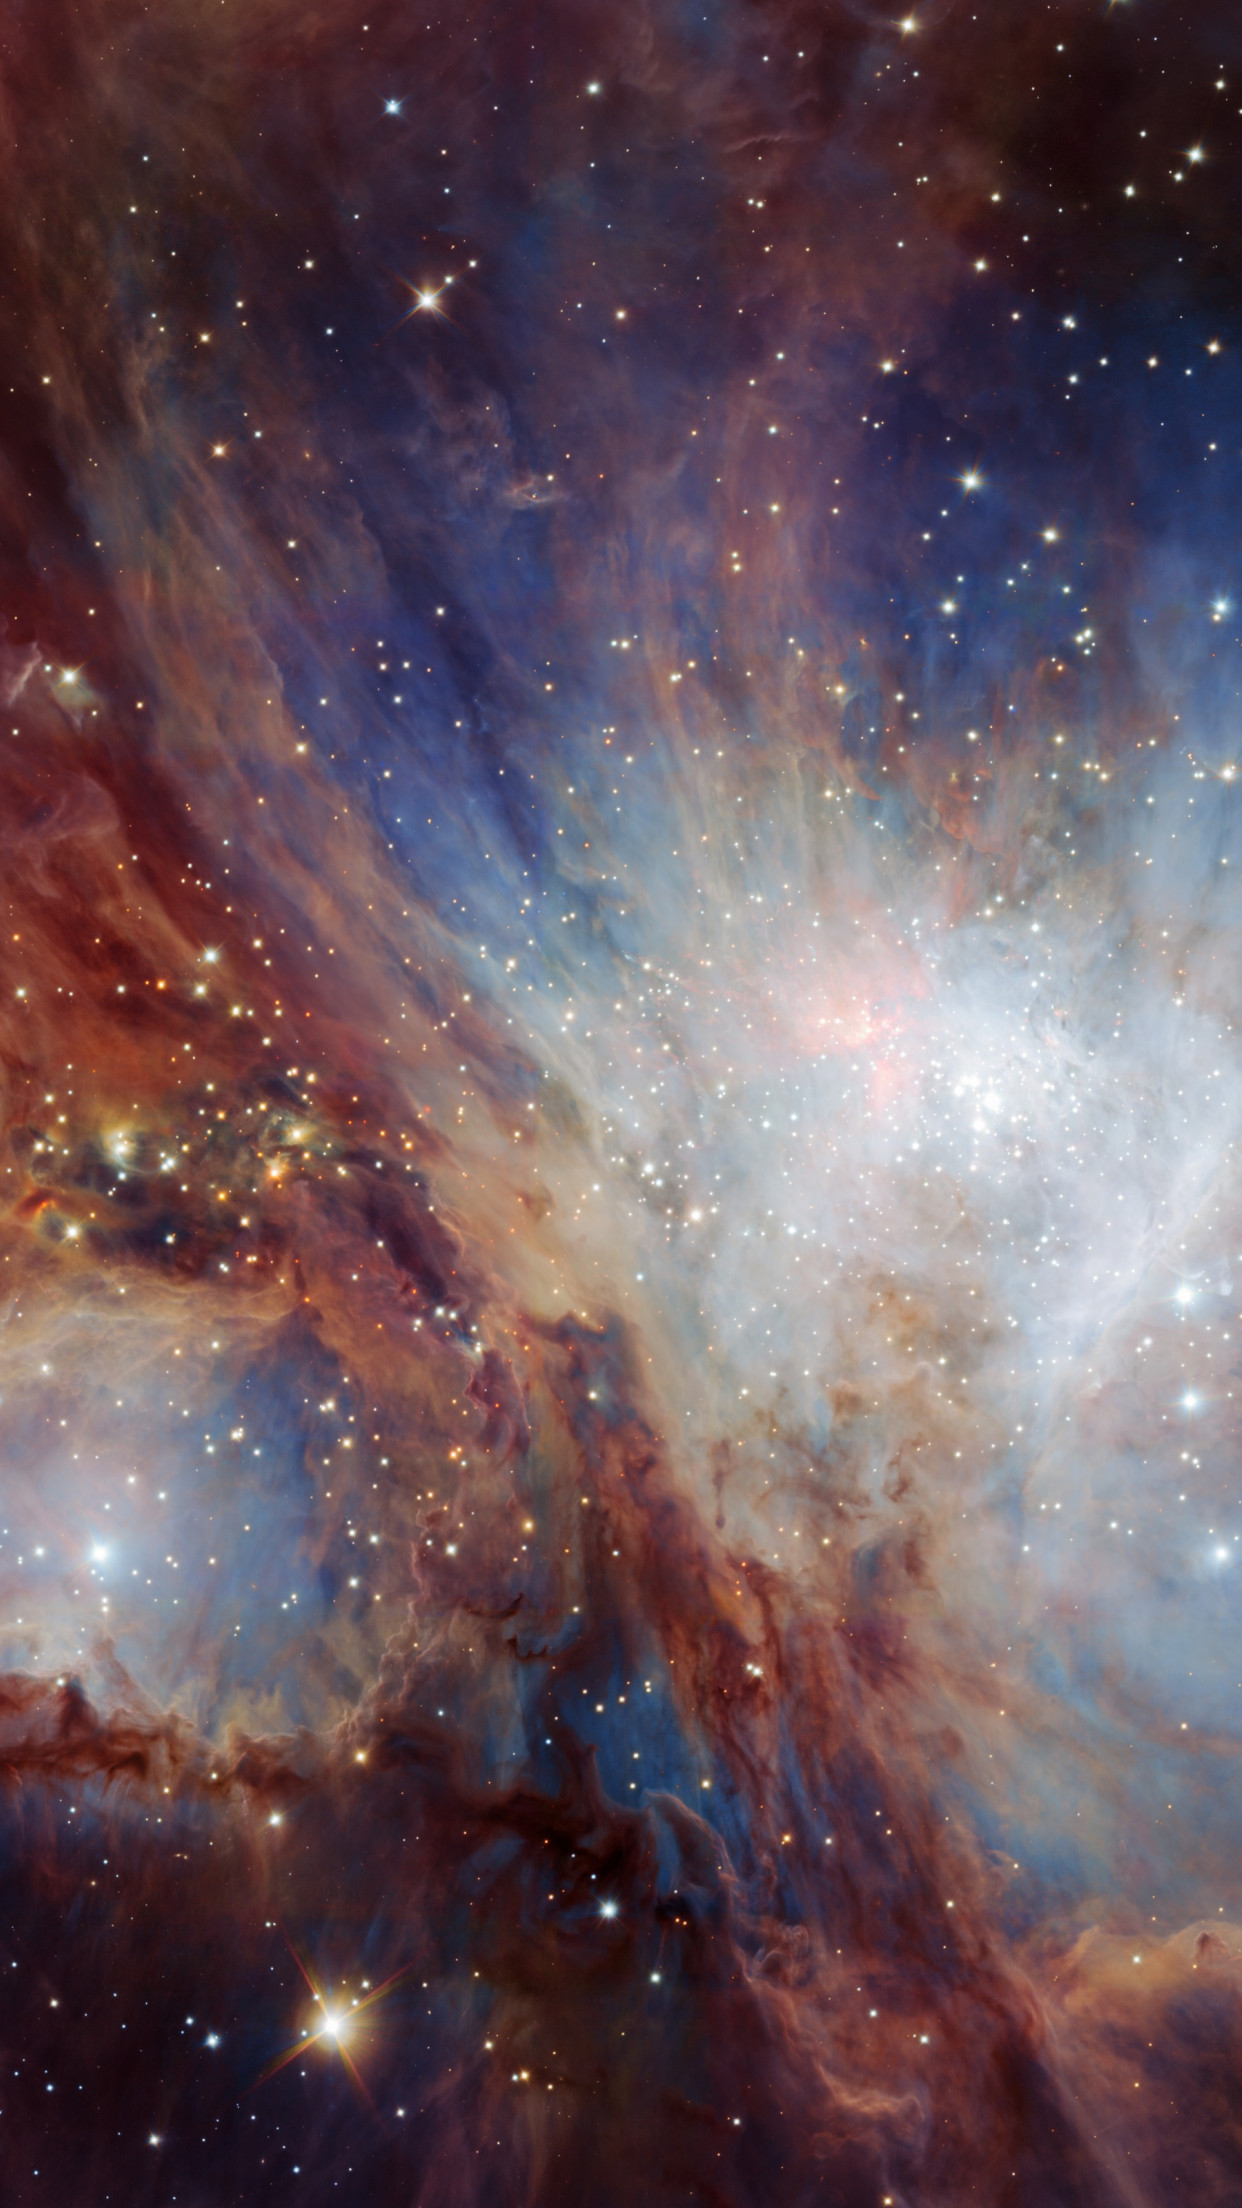 Infrared view of the Orion Nebula wallpaper 1242x2208